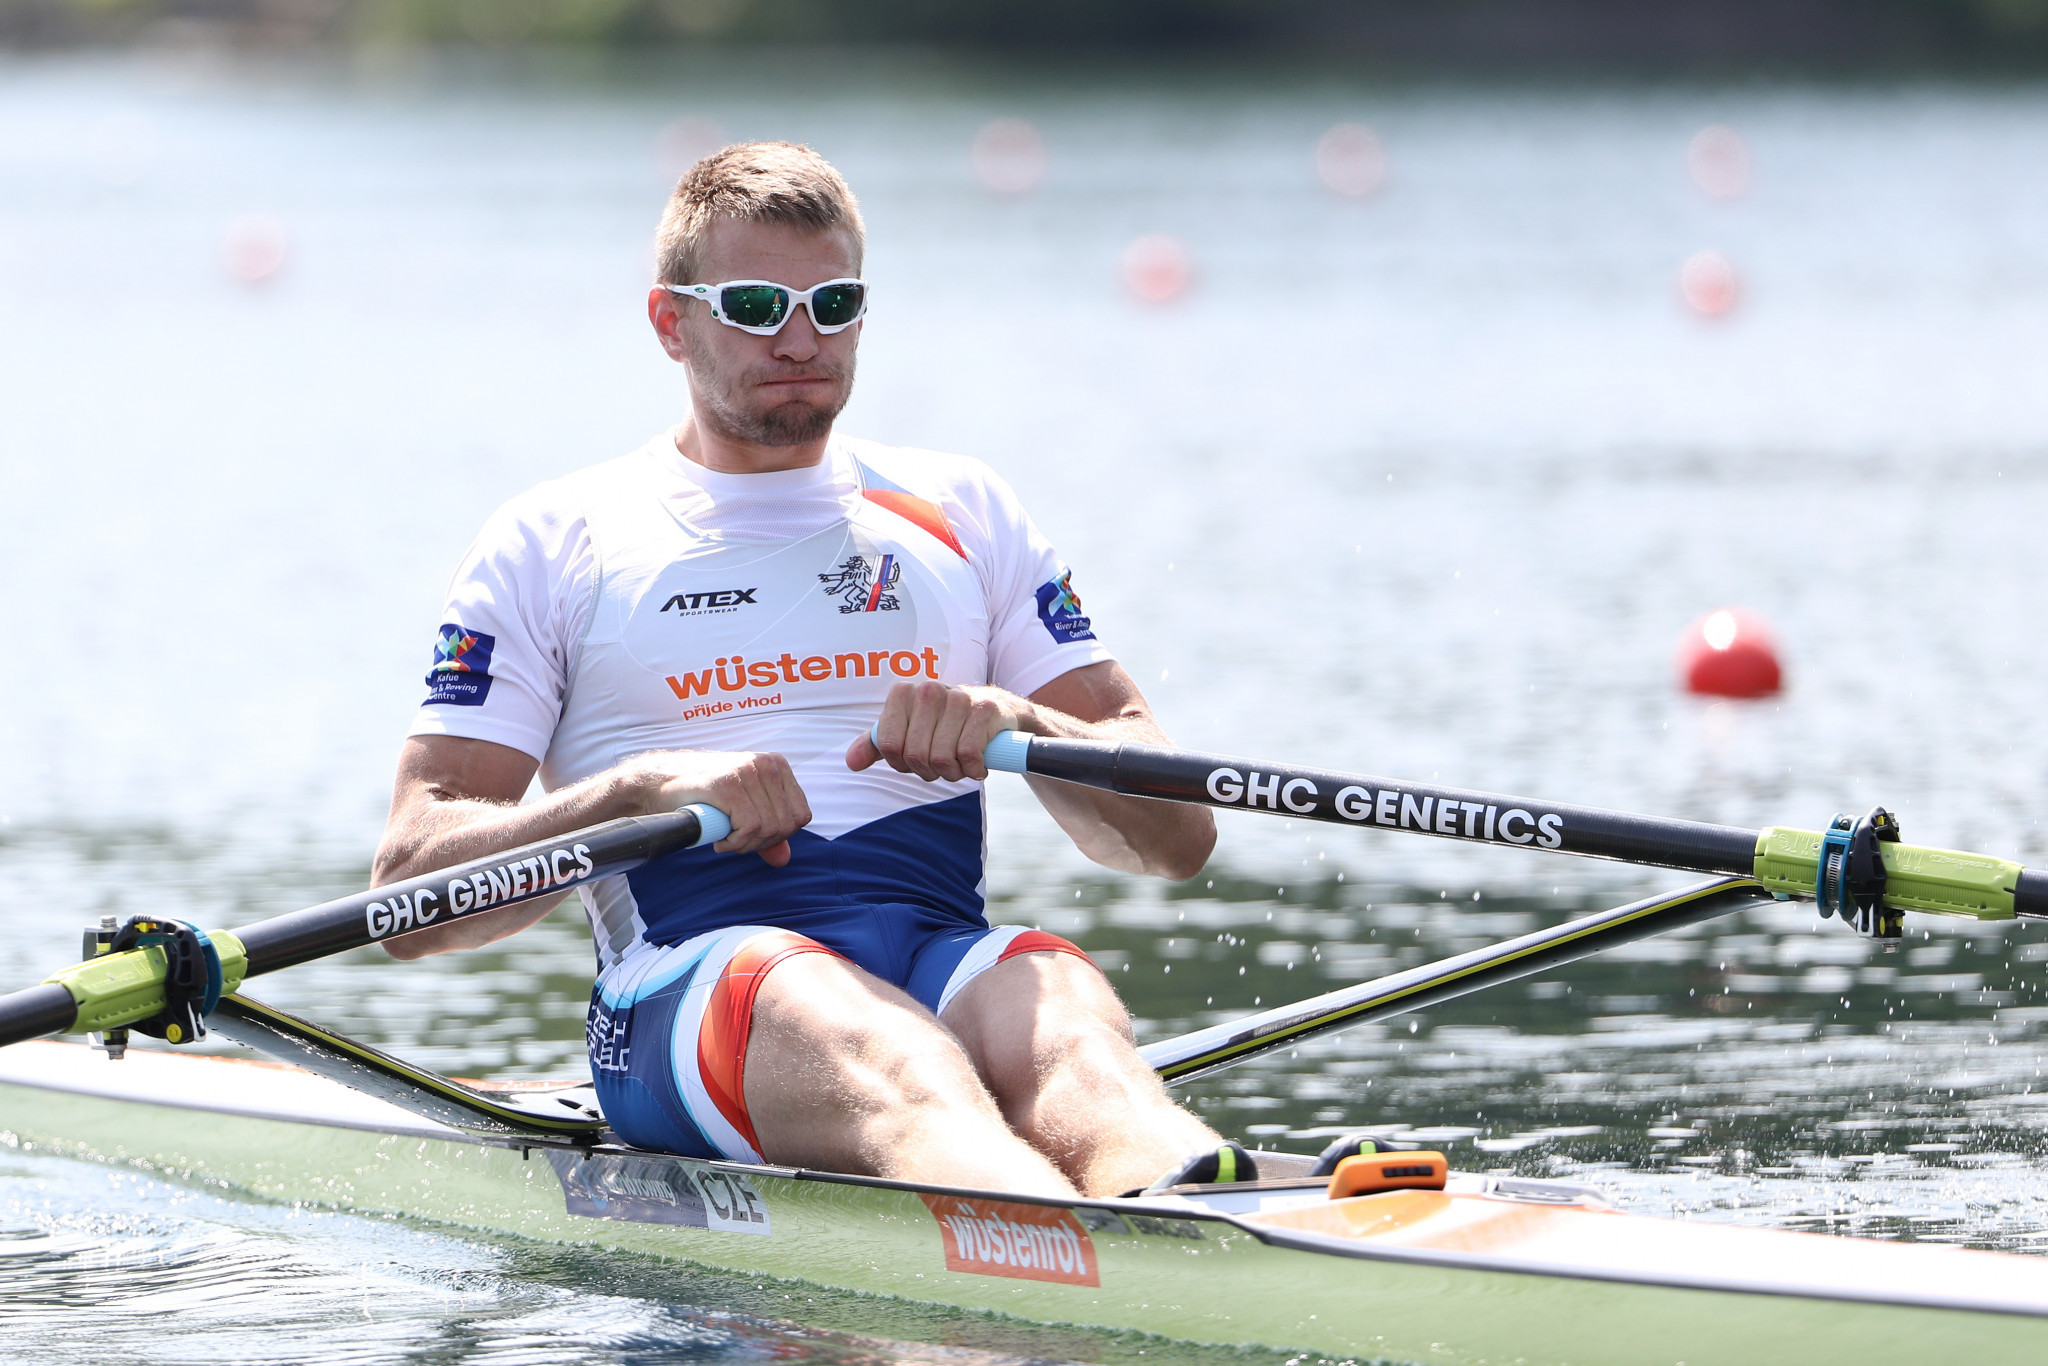 Ondřej Synek of the Czech Republic, a three-time Olympic medallist, claimed his fifth world title as he stormed to victory in the men's single sculls ©Getty Images